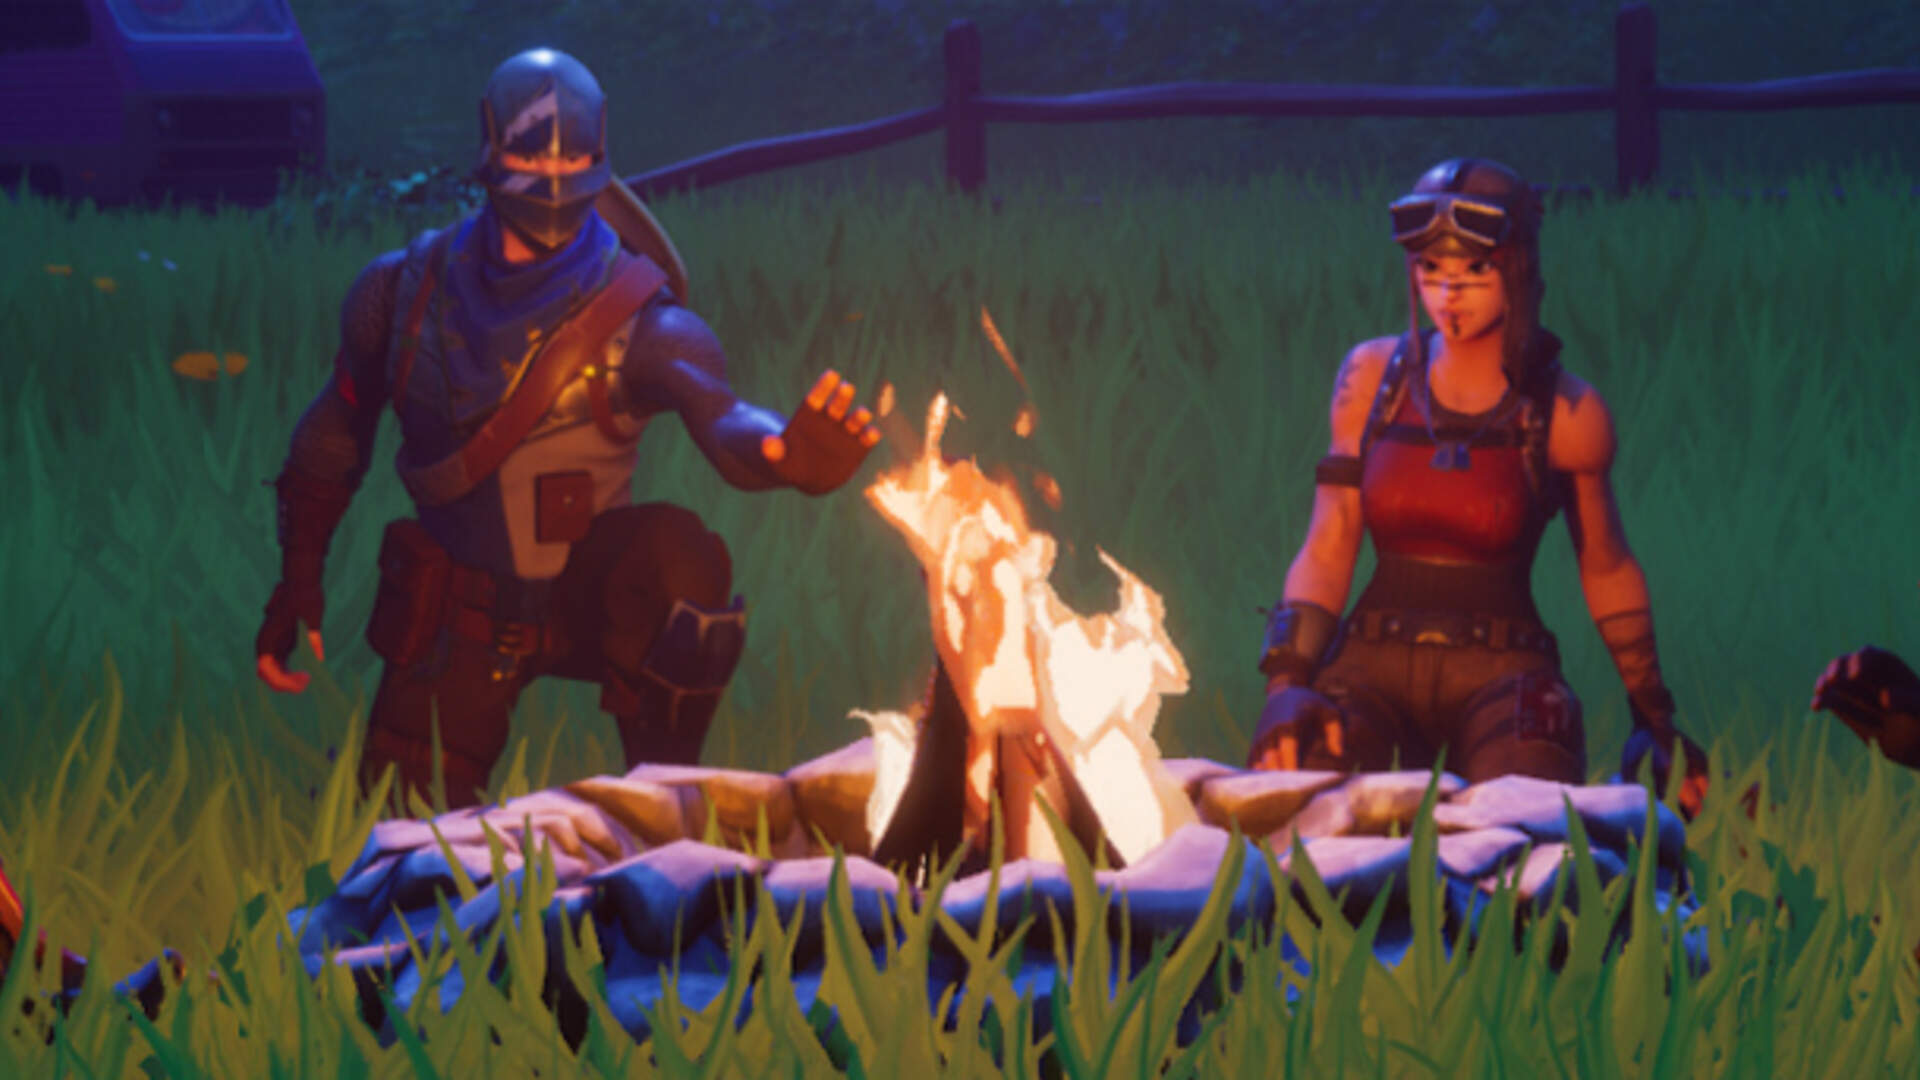 Fortnite PS4 Patch 3.4.4/Update 1.53 Fixes Crash bug, but Epic Apologizes for 10GB Download